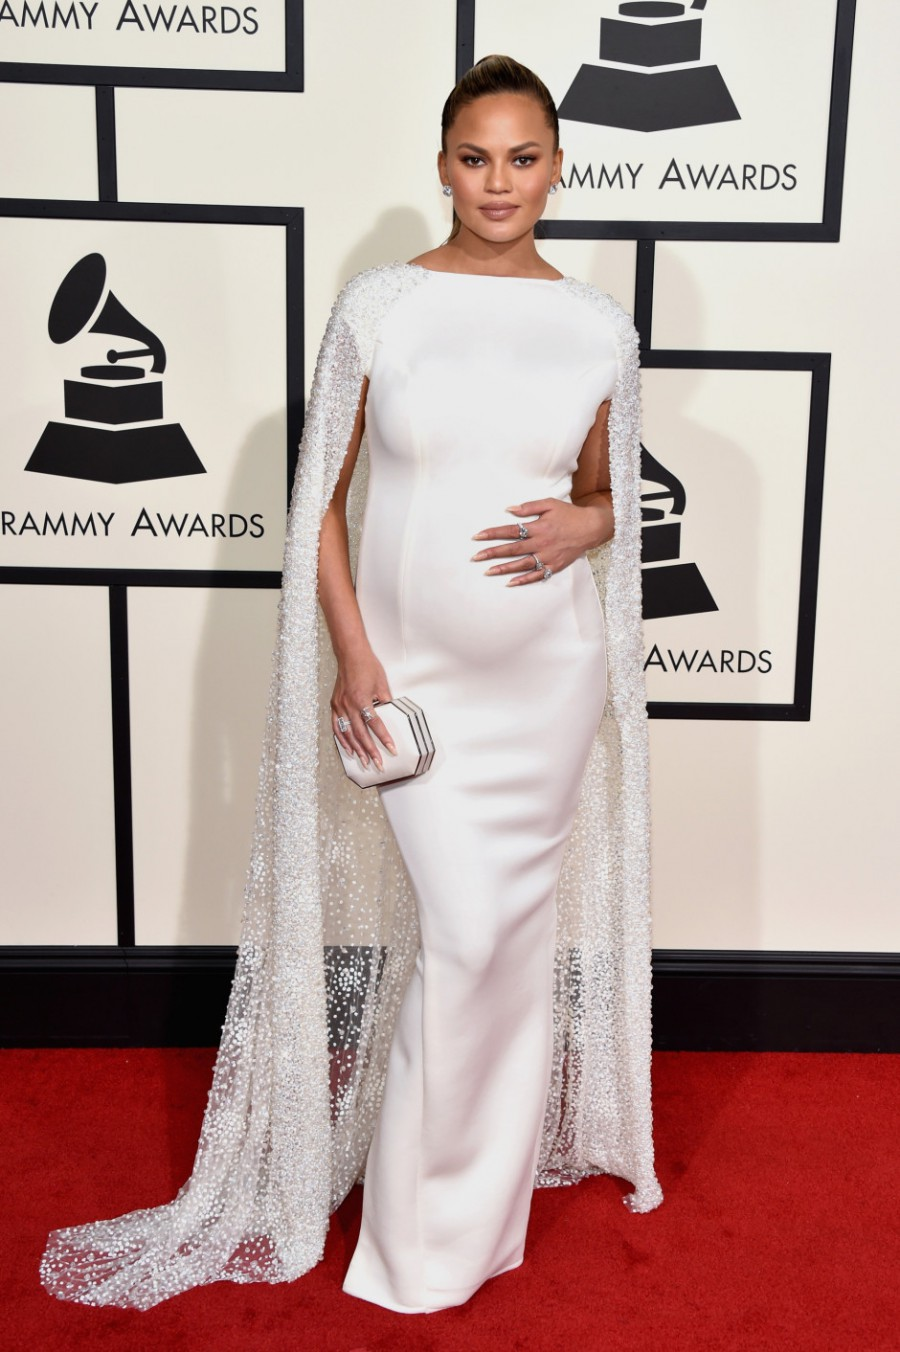 Chrissy_Teigen_Pregnant_Fashion_xpnfzs